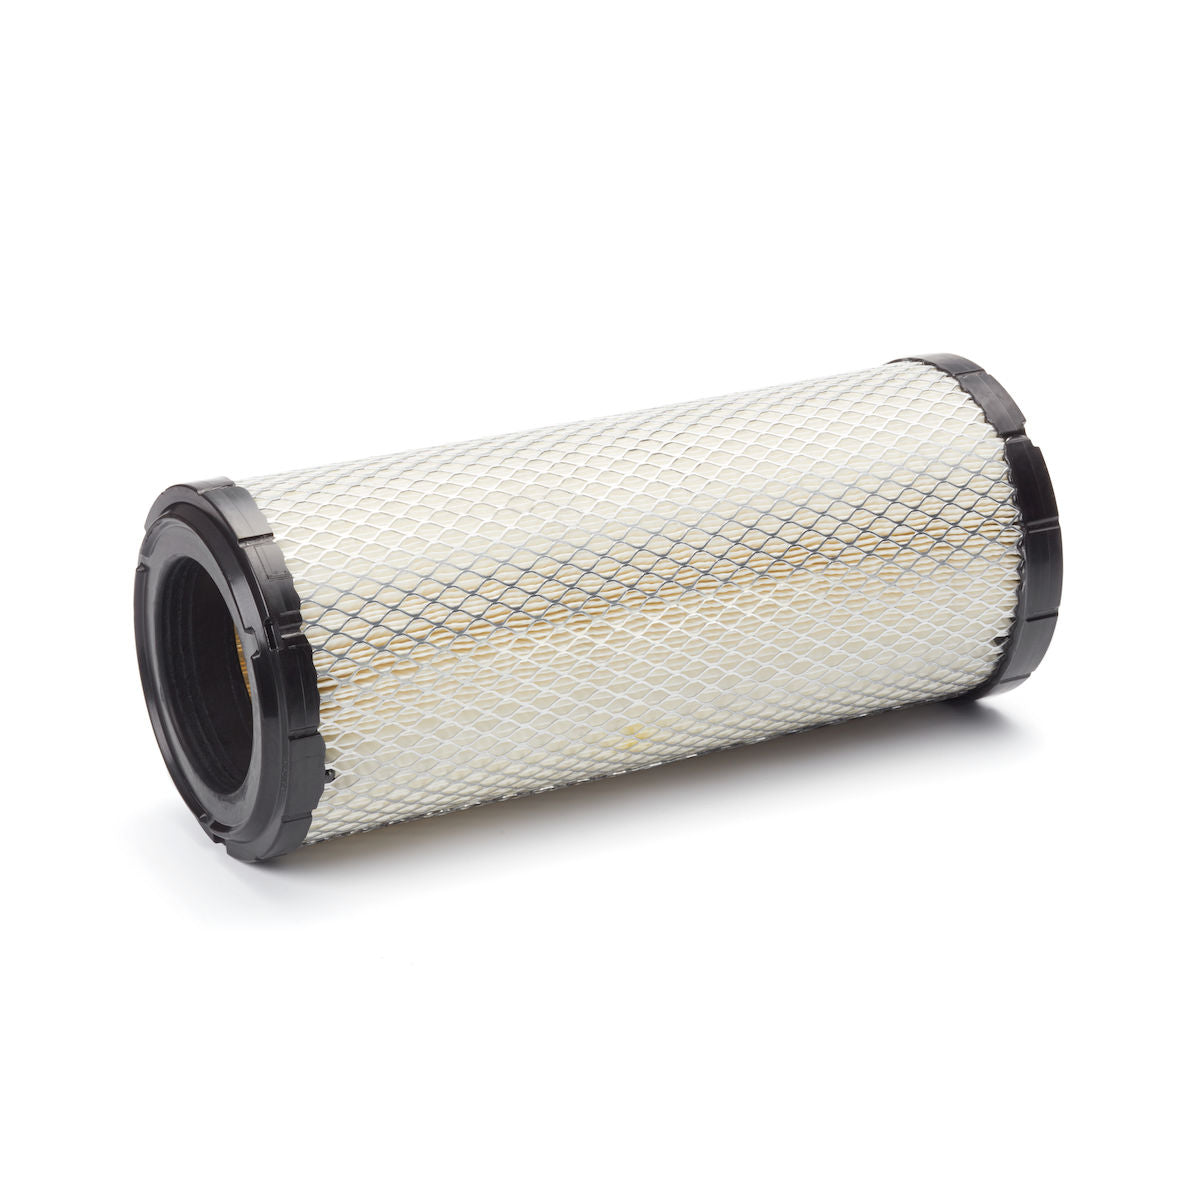 Air Filter for the YXZ1000 Turbo Kit